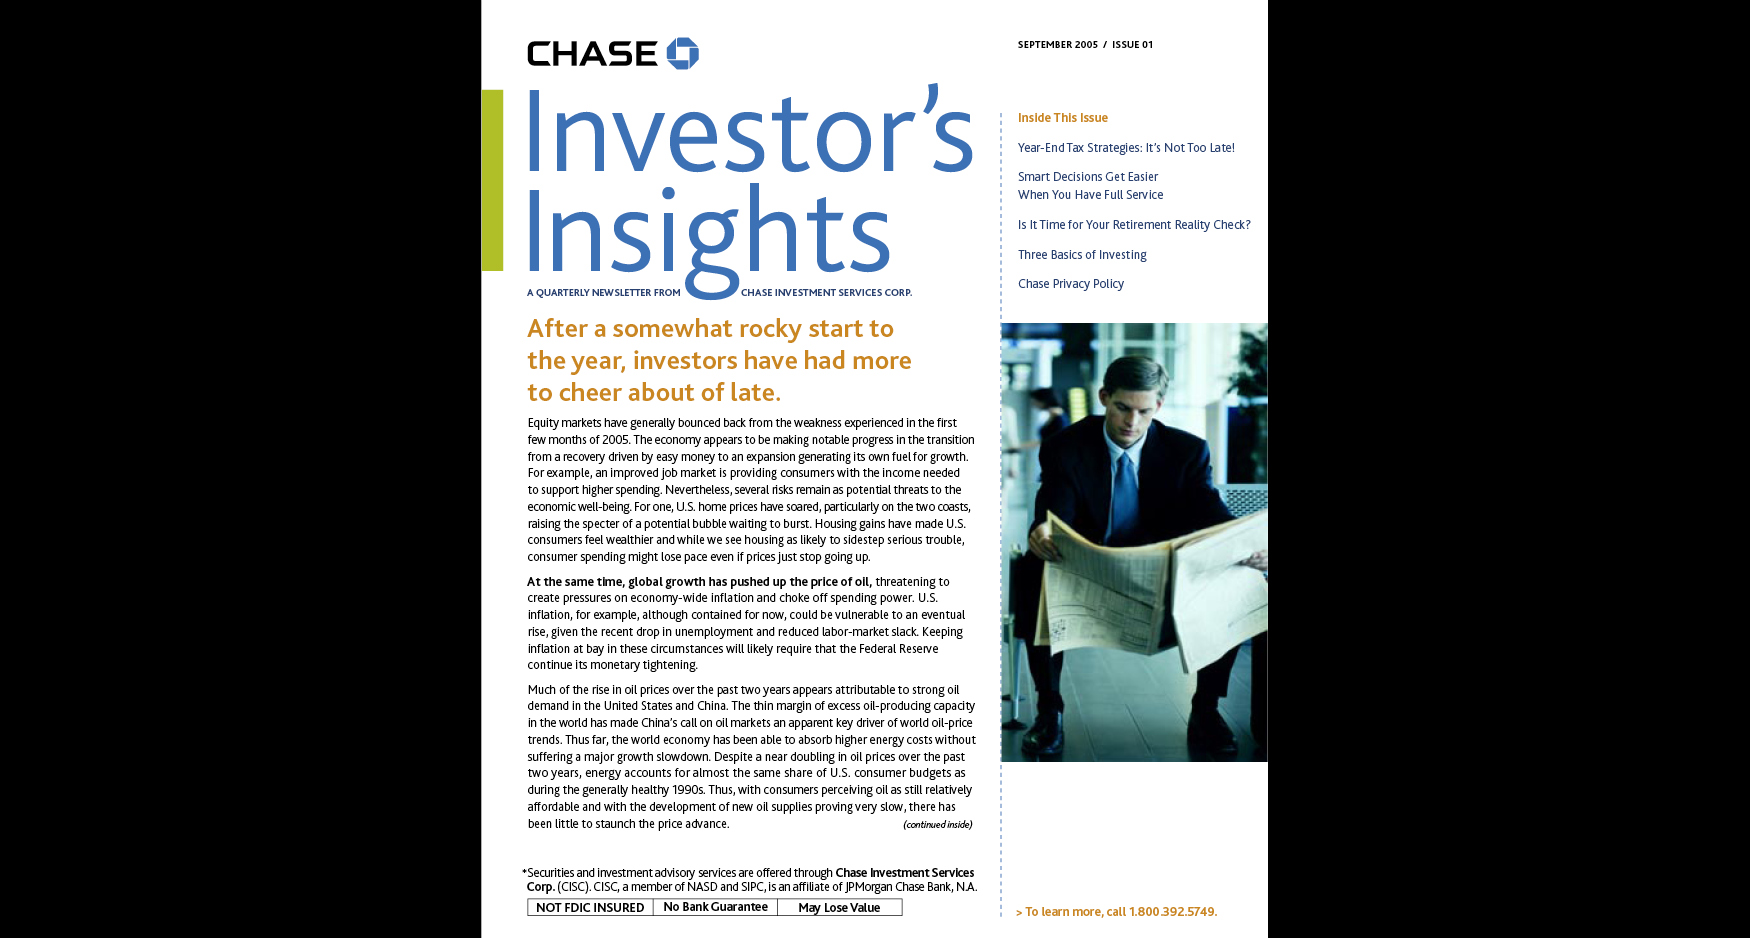 BP Large Website Images56 - JPMORGAN CHASE - INVESTOR'S INSIGHTS NEWSLETTER